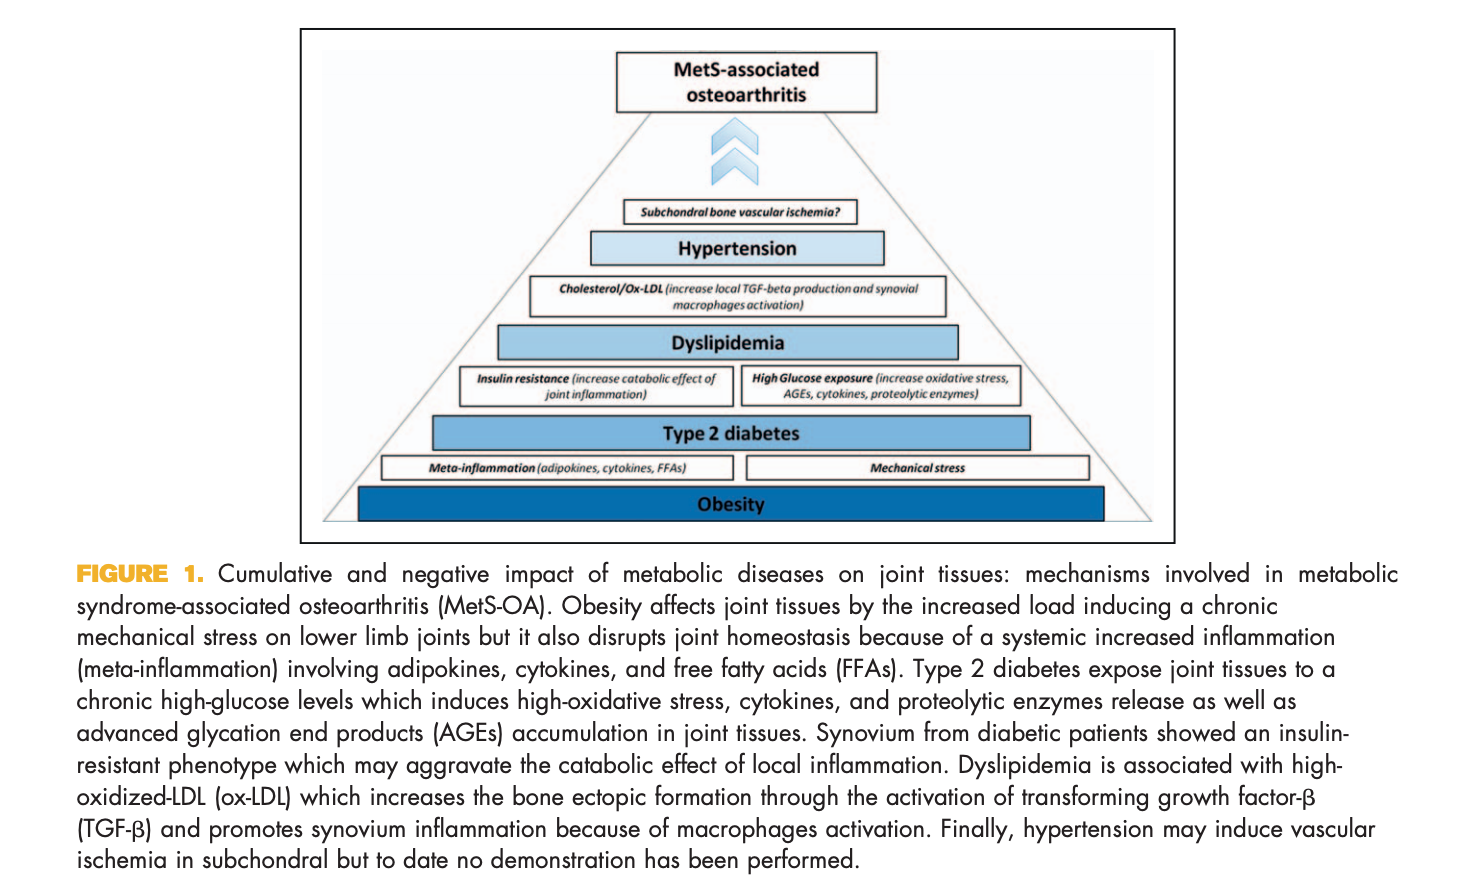 """Courties, Alice, Jérémie Sellam, and Francis Berenbaum. """"Metabolic Syndrome-Associated Osteoarthritis:""""  Current Opinion in Rheumatology  29, no. 2 (March 2017): 214–22.  https://doi.org/10.1097/BOR.0000000000000373 ."""